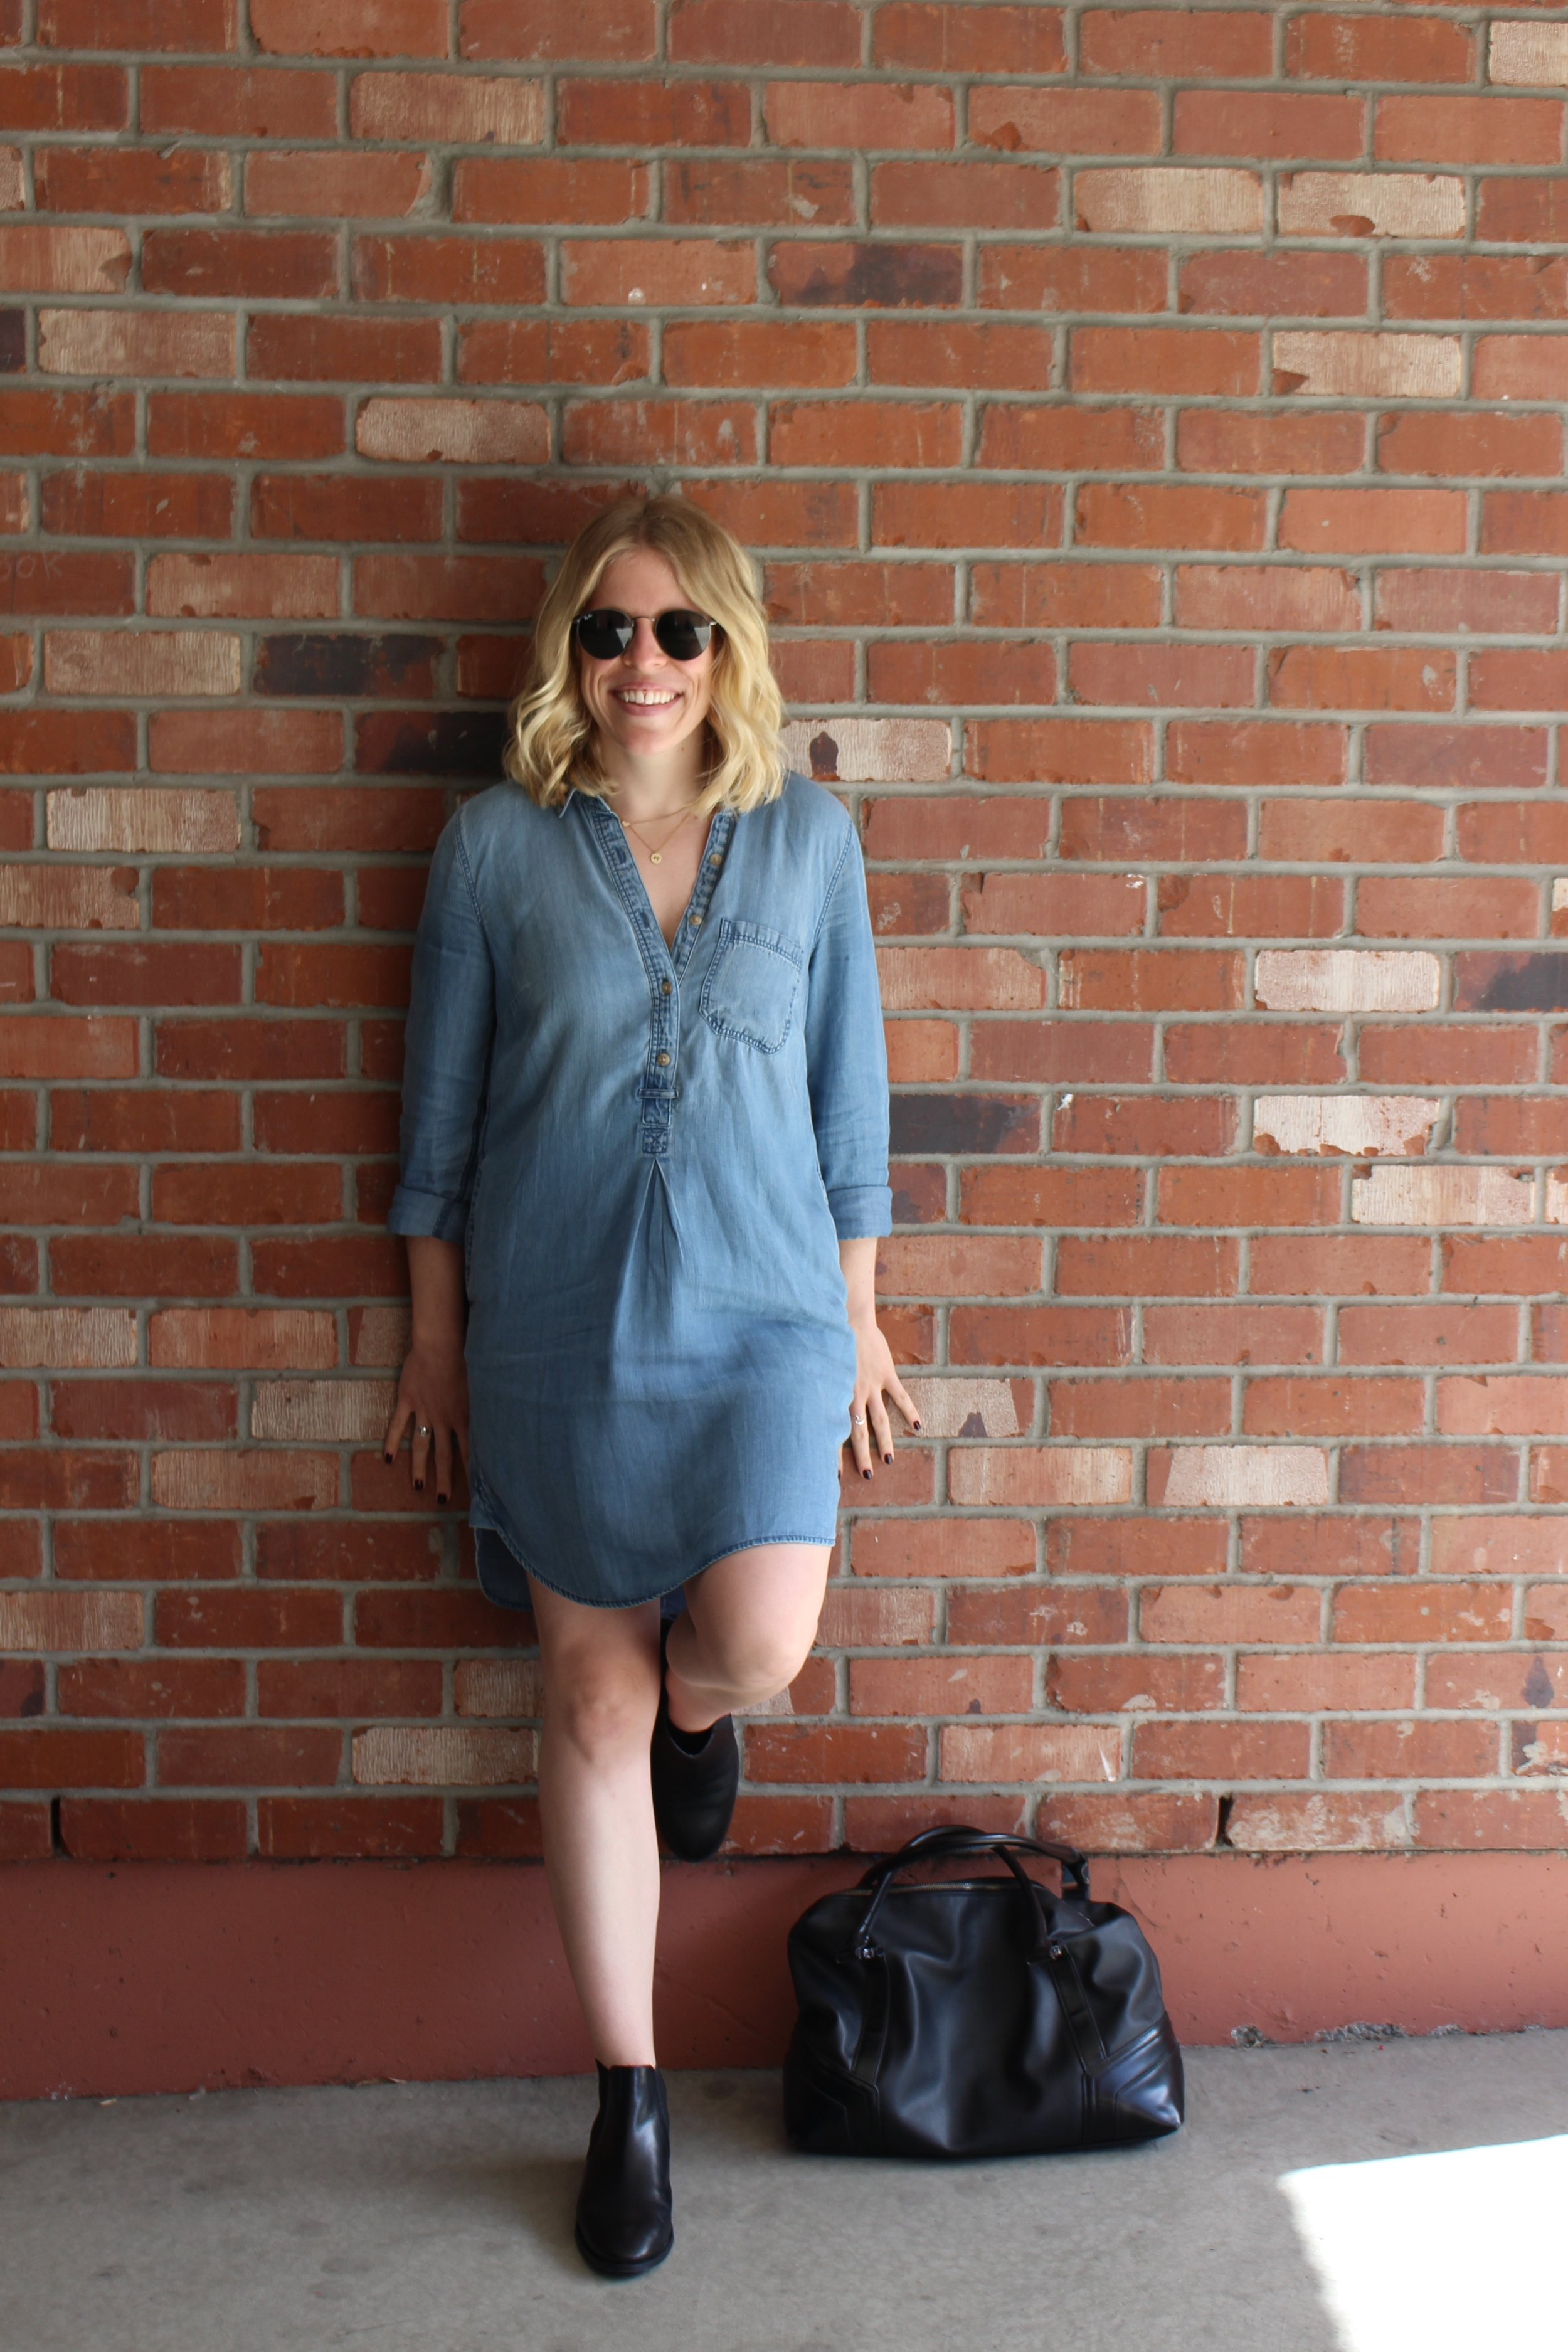 American Eagle   Dress,   Topshop   Boots,   Mark by Avon   Purse,   Ray Ban   Sunglasses